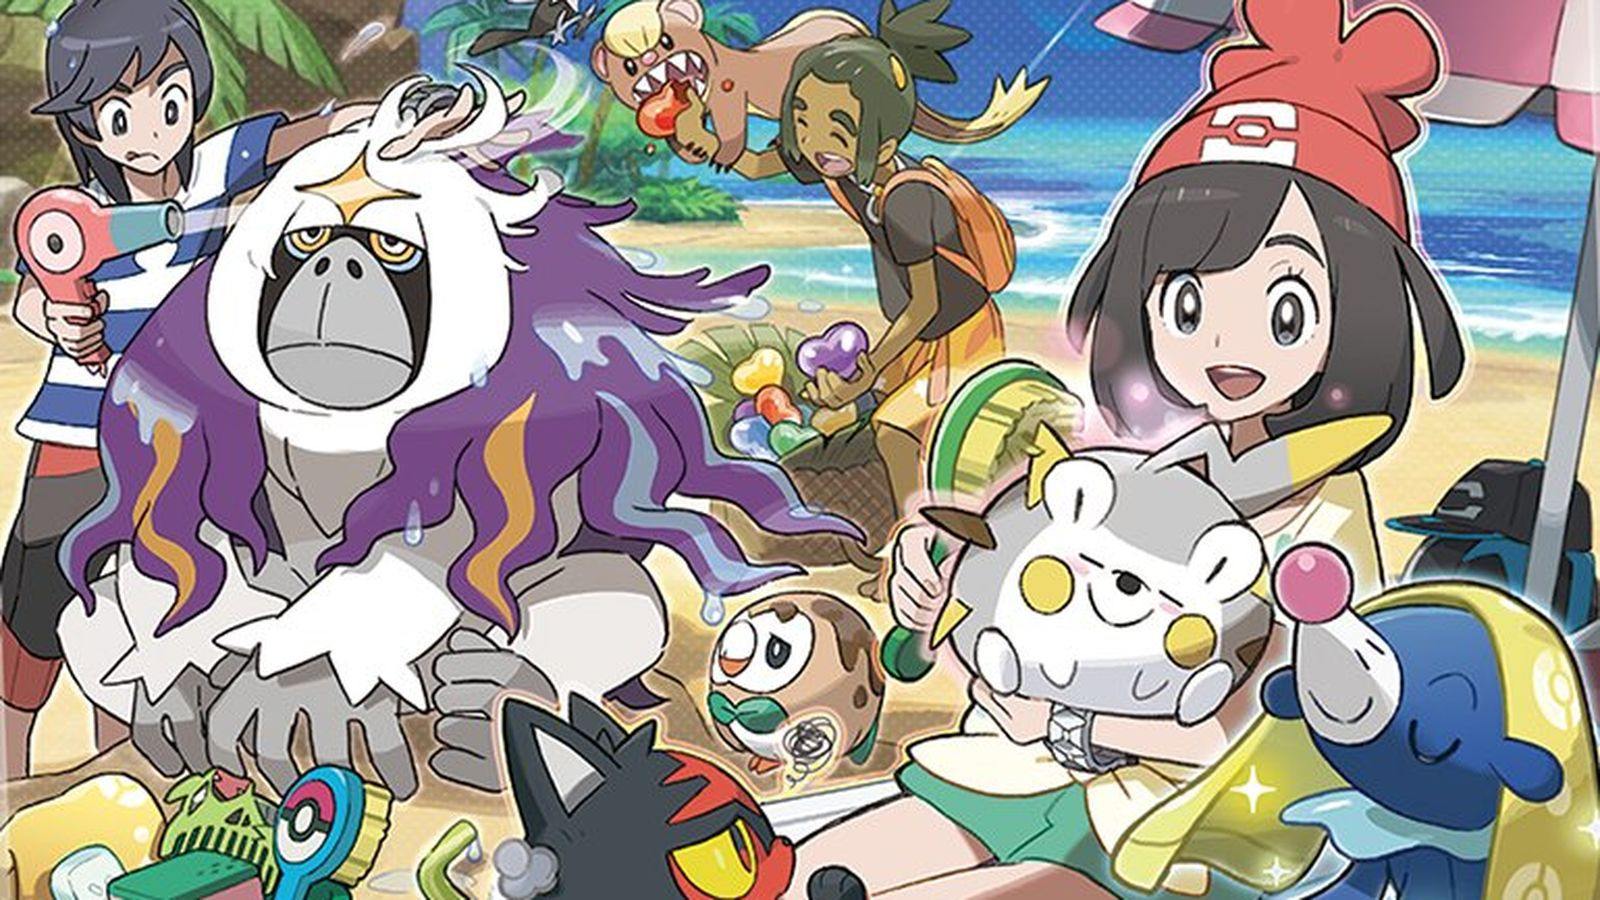 Pokémon Ultra Sun and Moon's photo mode is cute as heck